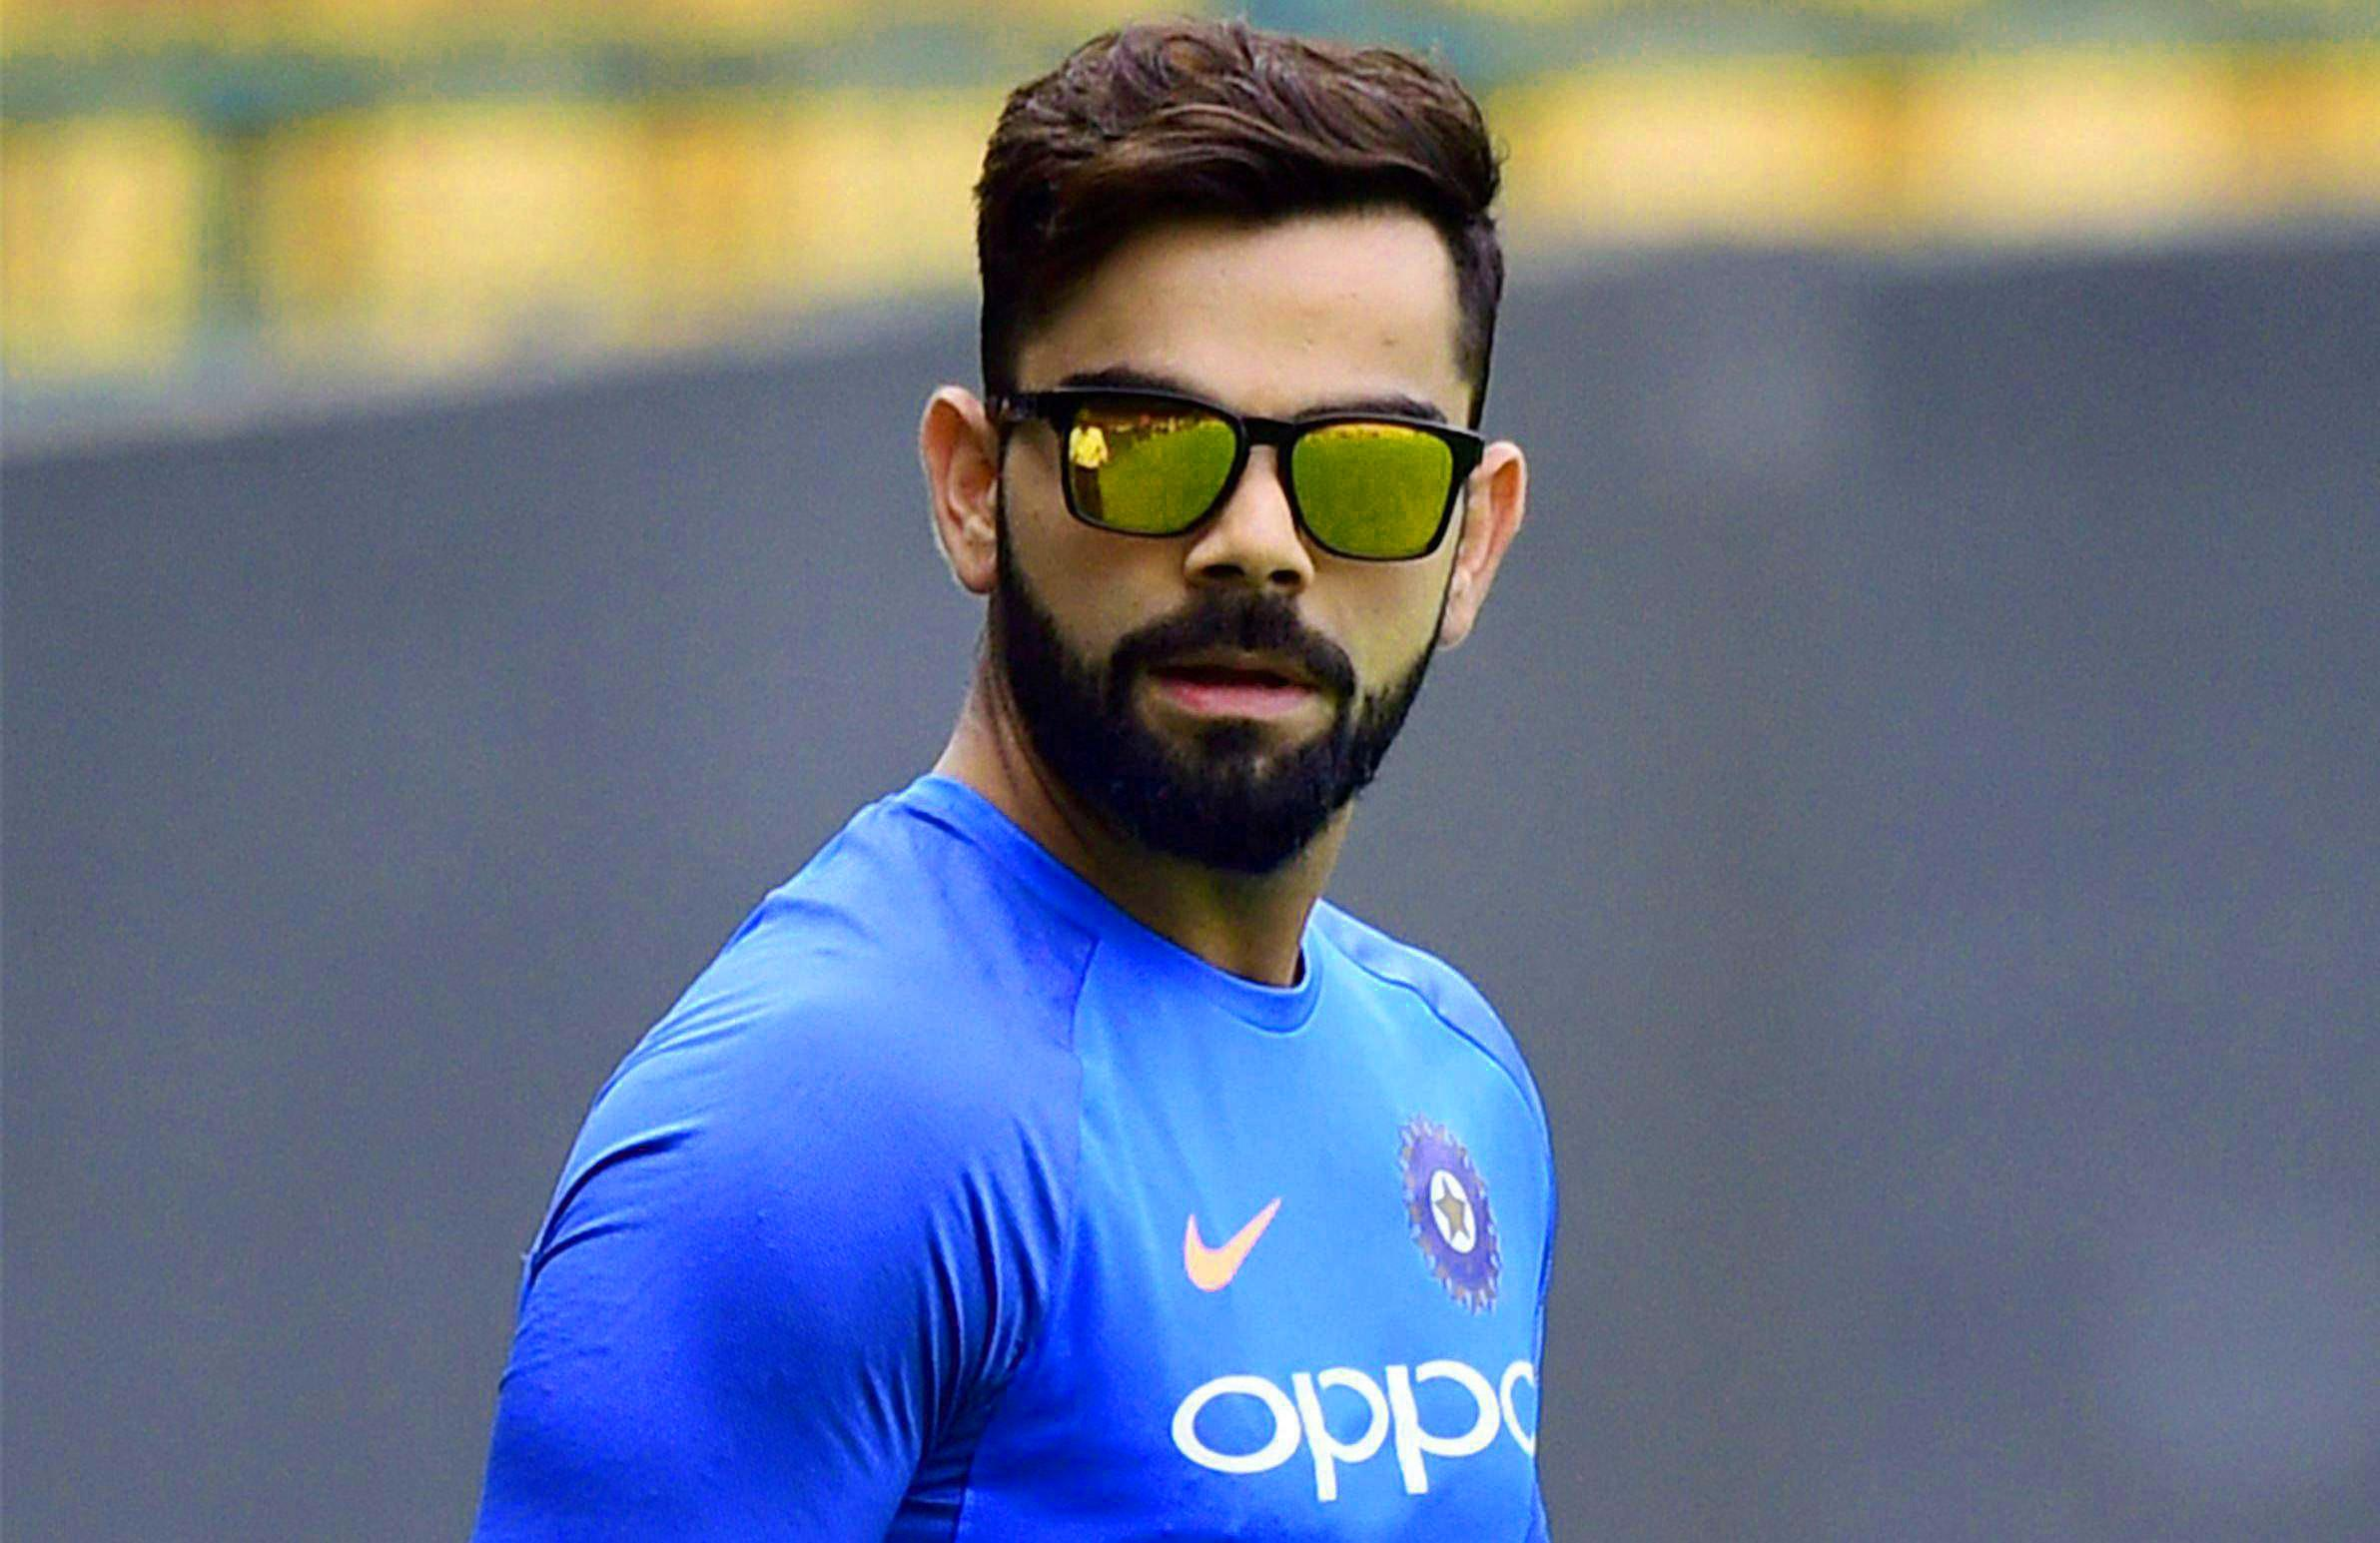 Virat Kohli IPL Wallpapers - Wallpaper Cave